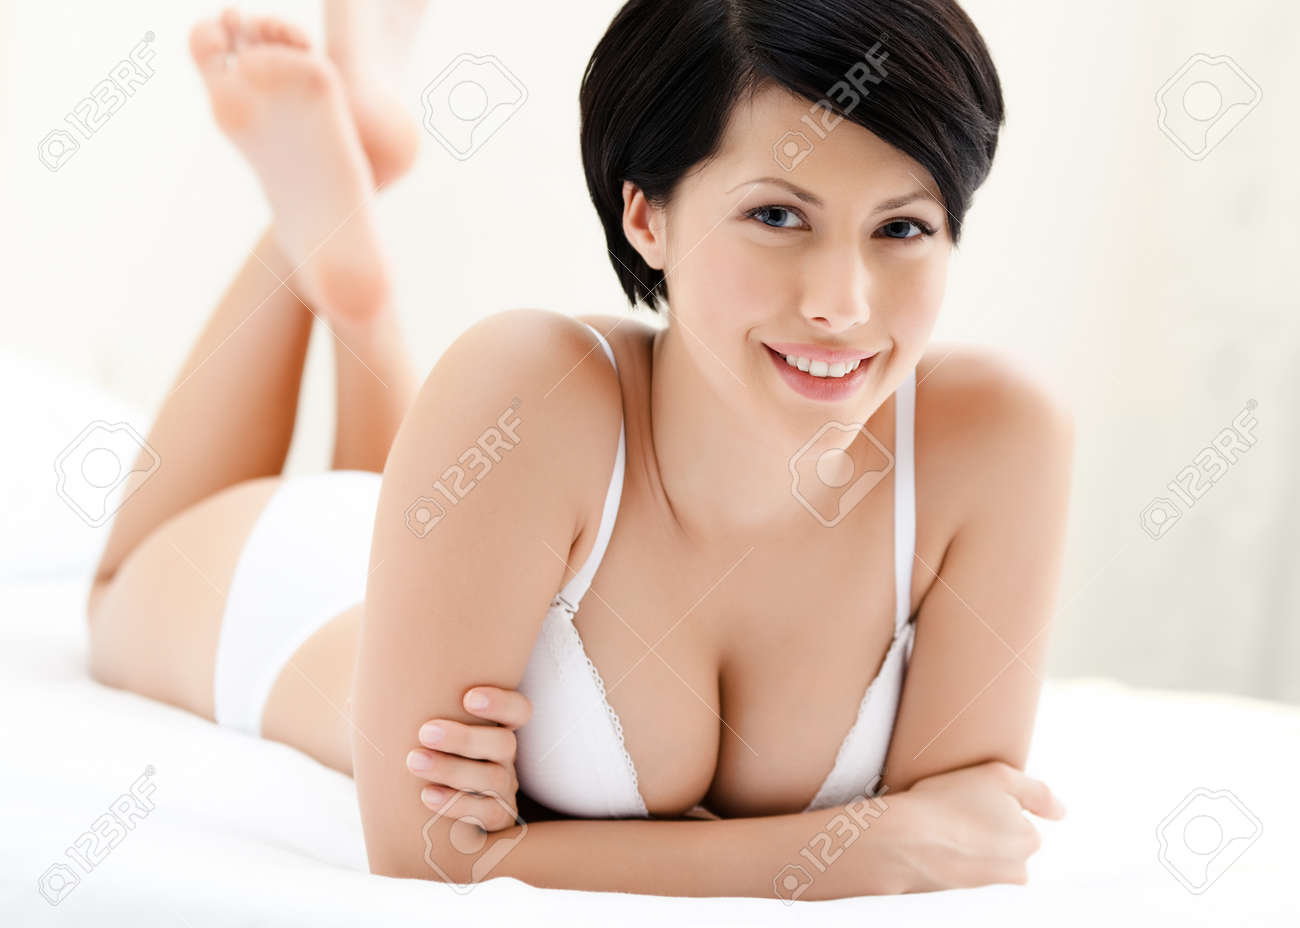 Woman in underwear is lying in the bed with white bed linen, white background Stock Photo - 15647698